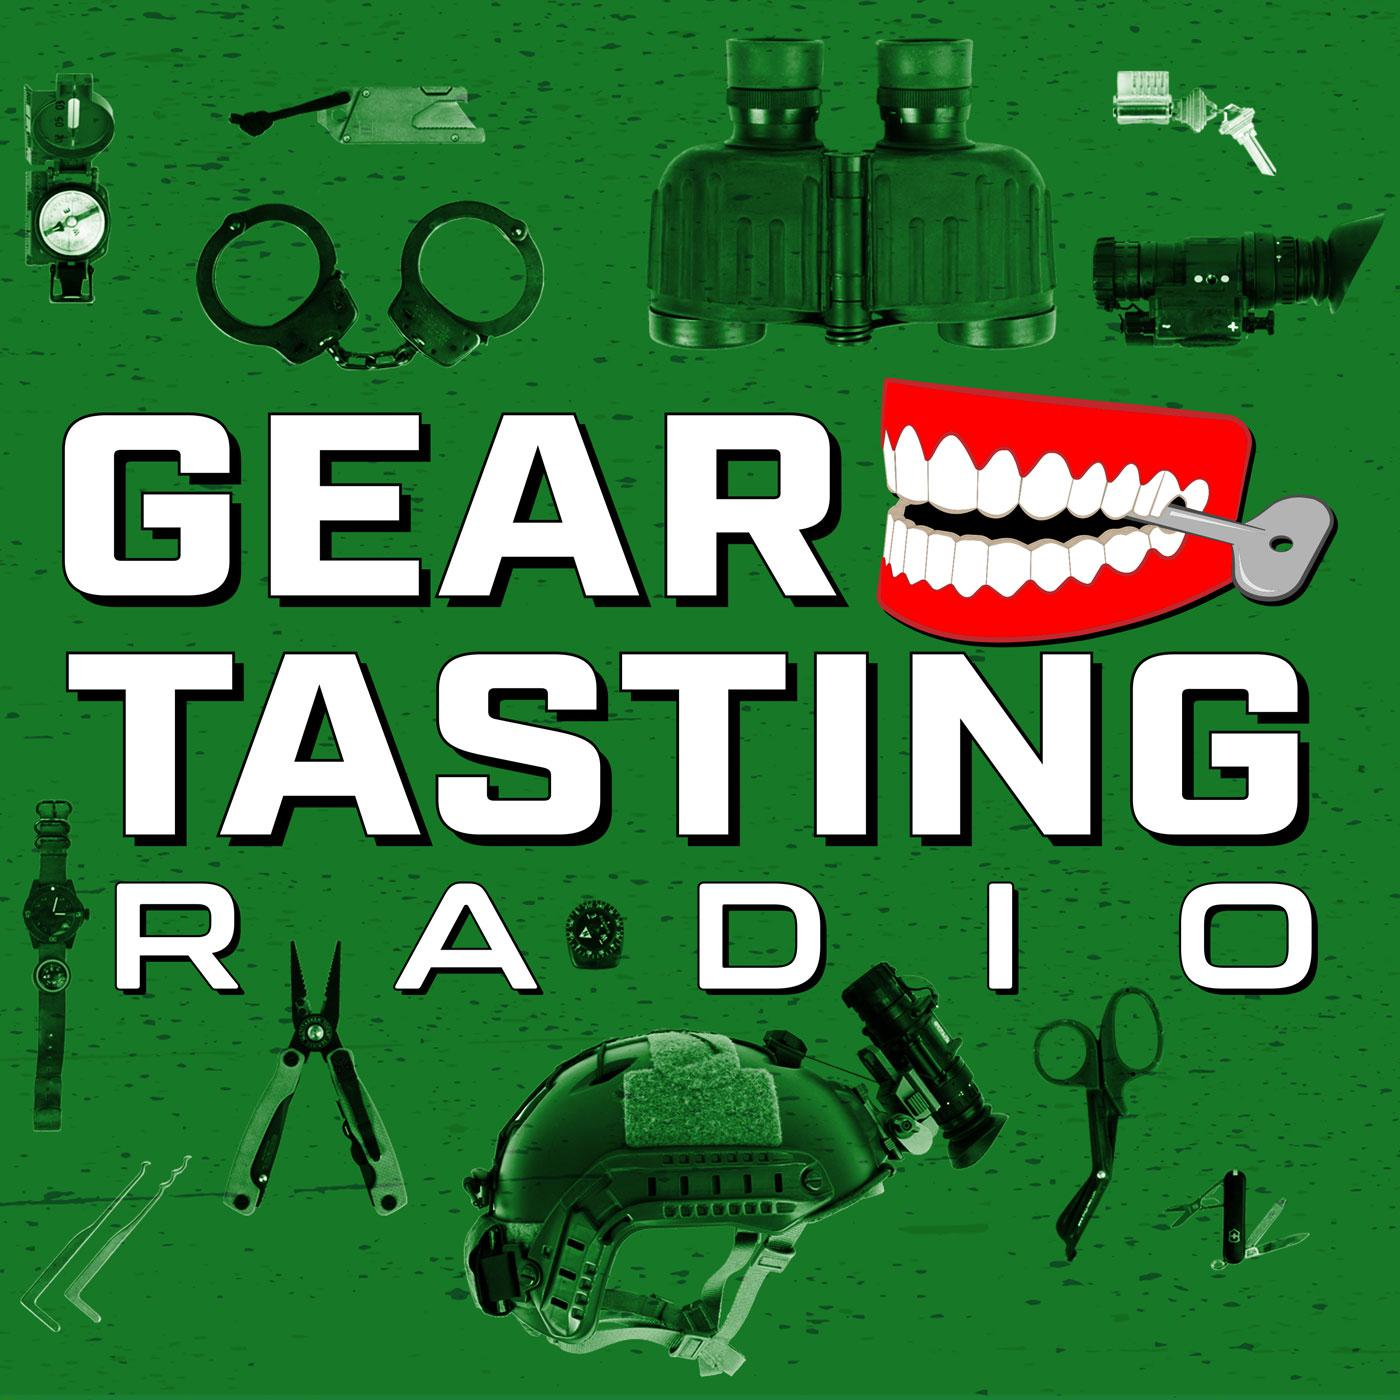 Gear Tasting Radio (podcast) - Radio ITS | Listen Notes